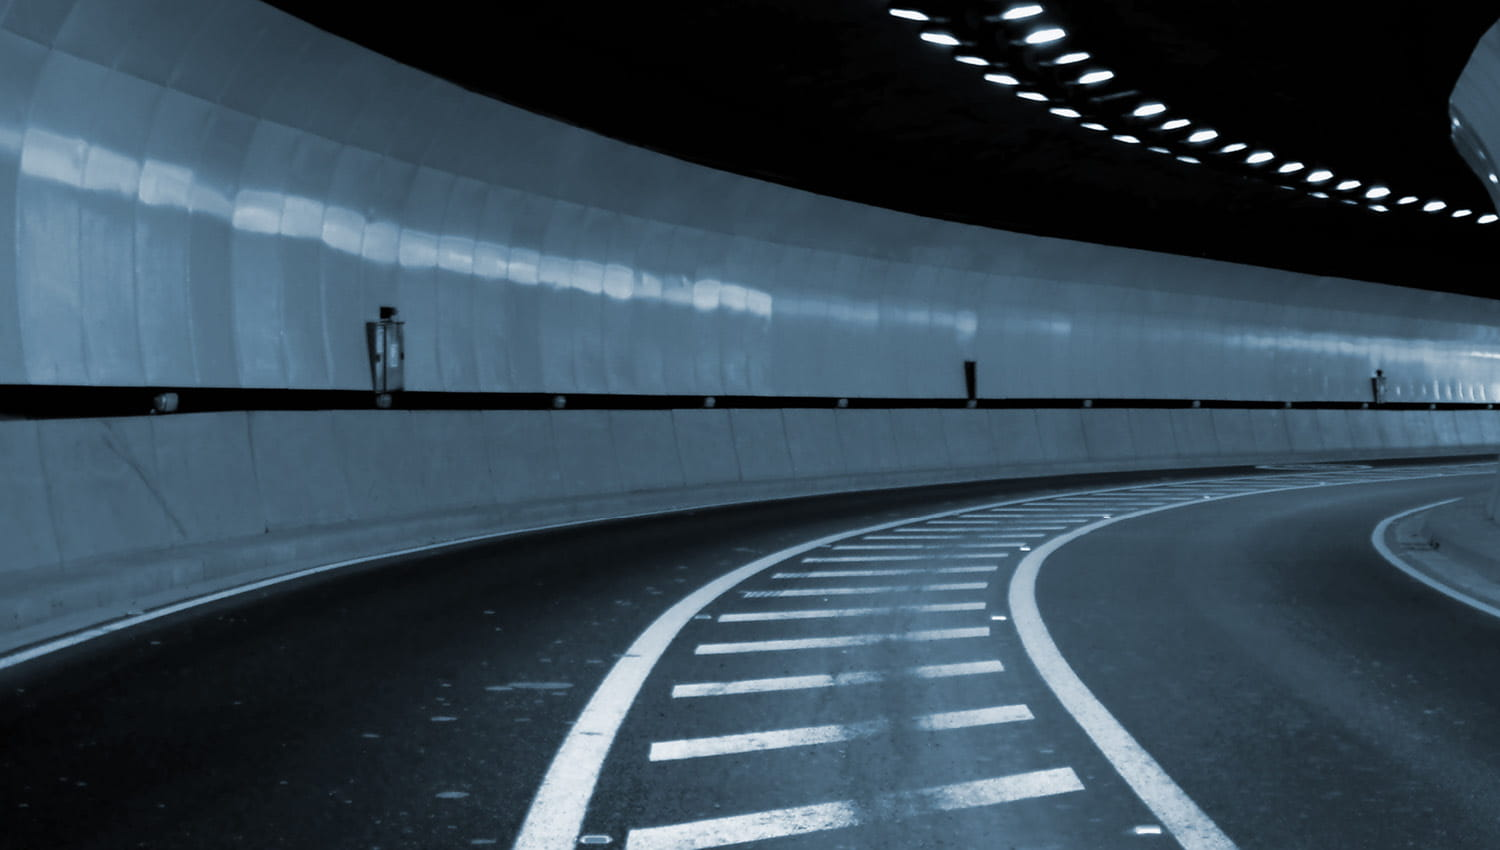 Private Equity trends image of road in tunnel